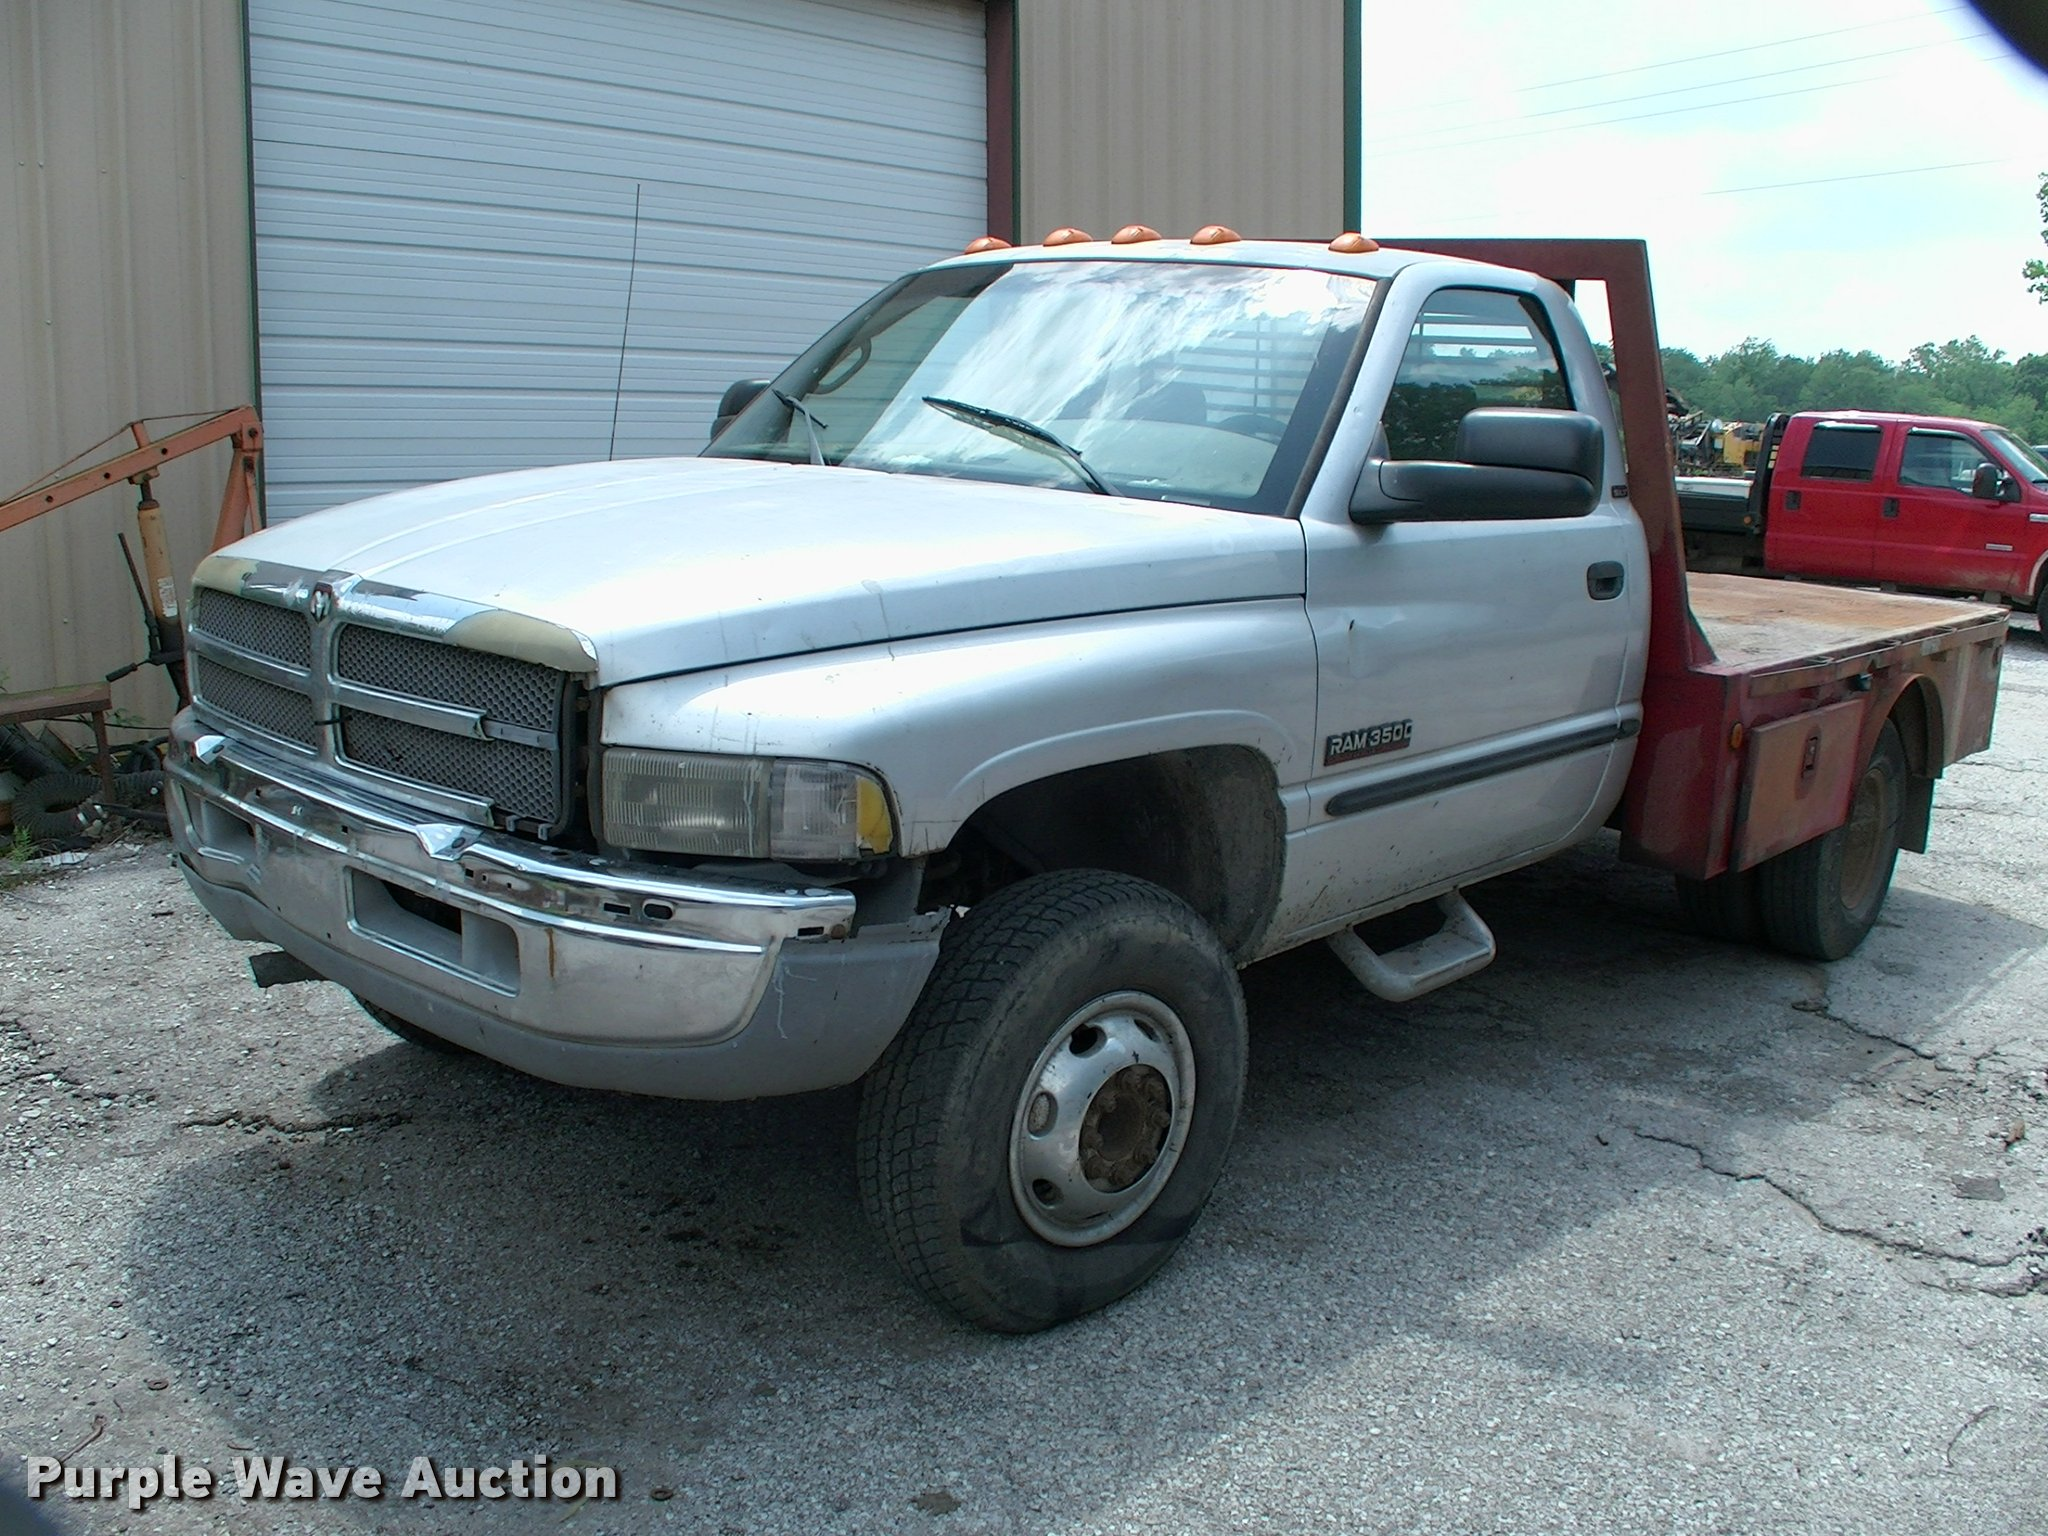 2001 Dodge Ram 3500 Flatbed Pickup Truck Item Dp9316 Sol Extended Cab Image For